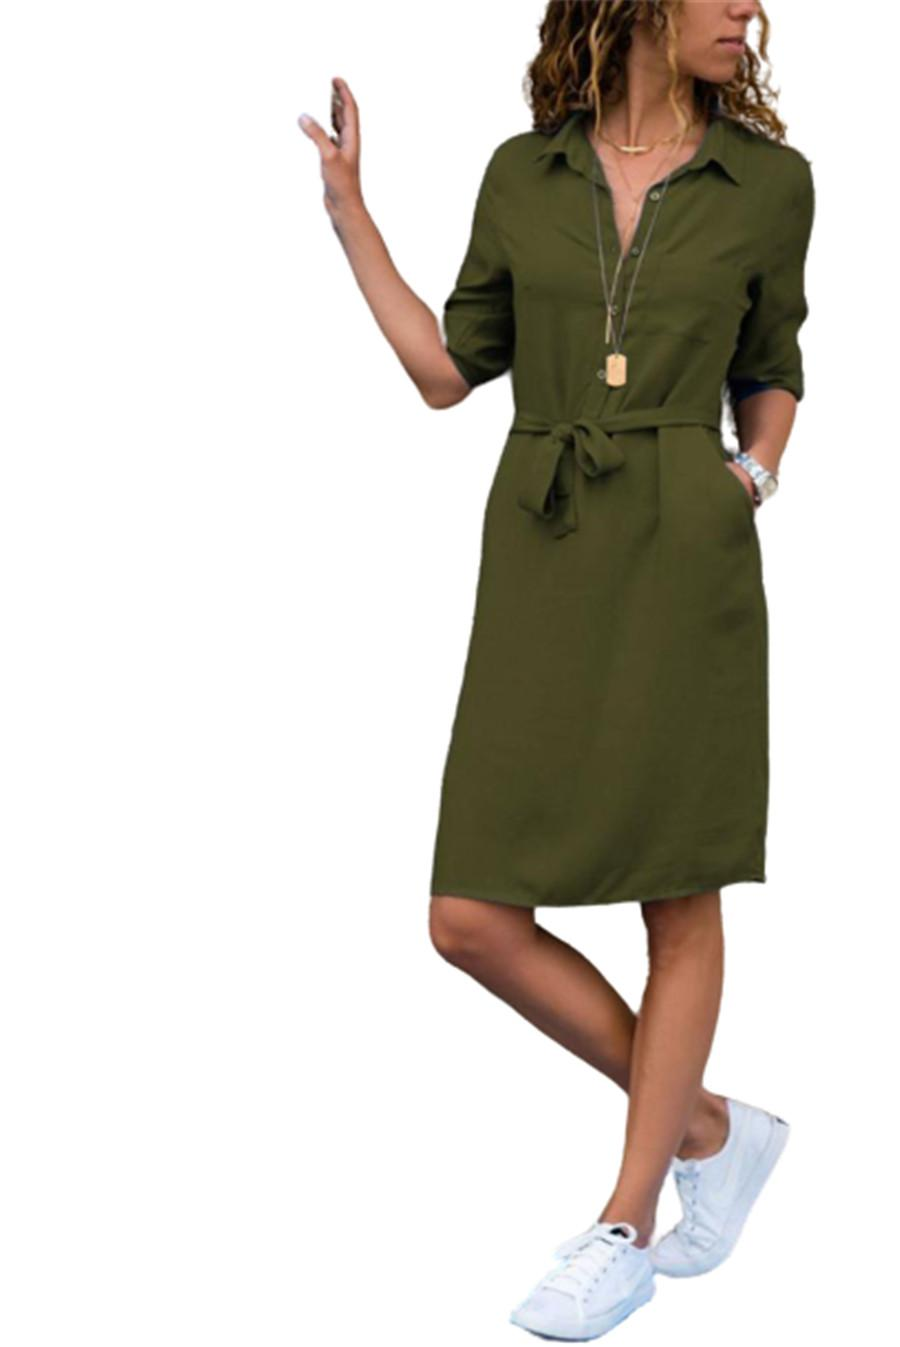 Autumn Three Quarter Sleeve Dresses for Women Work Casual Solid Color Shirt Blouses V Neck Dresses with Pocket